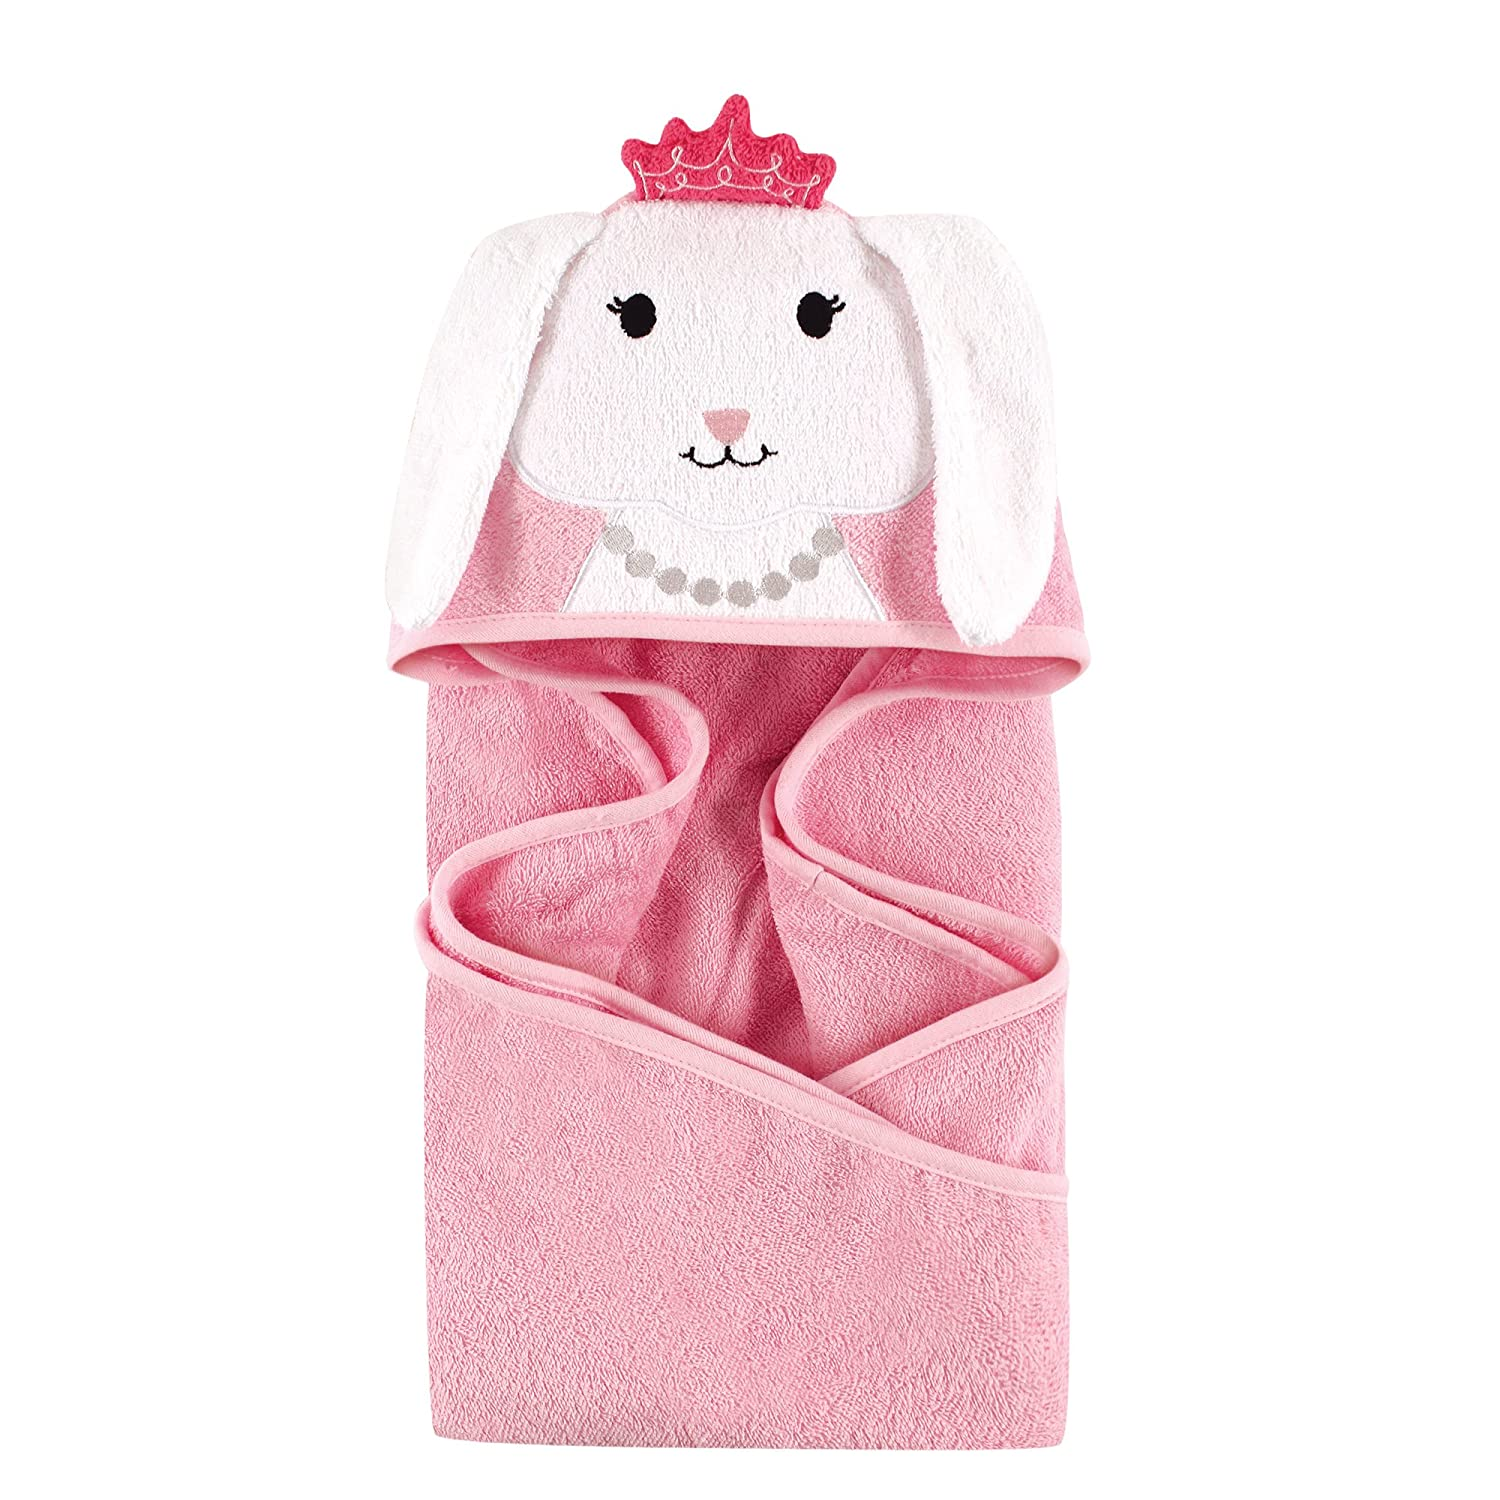 Hudson Baby Unisex Baby Cotton Animal Face Hooded Towel, Princess Bunny, One Size